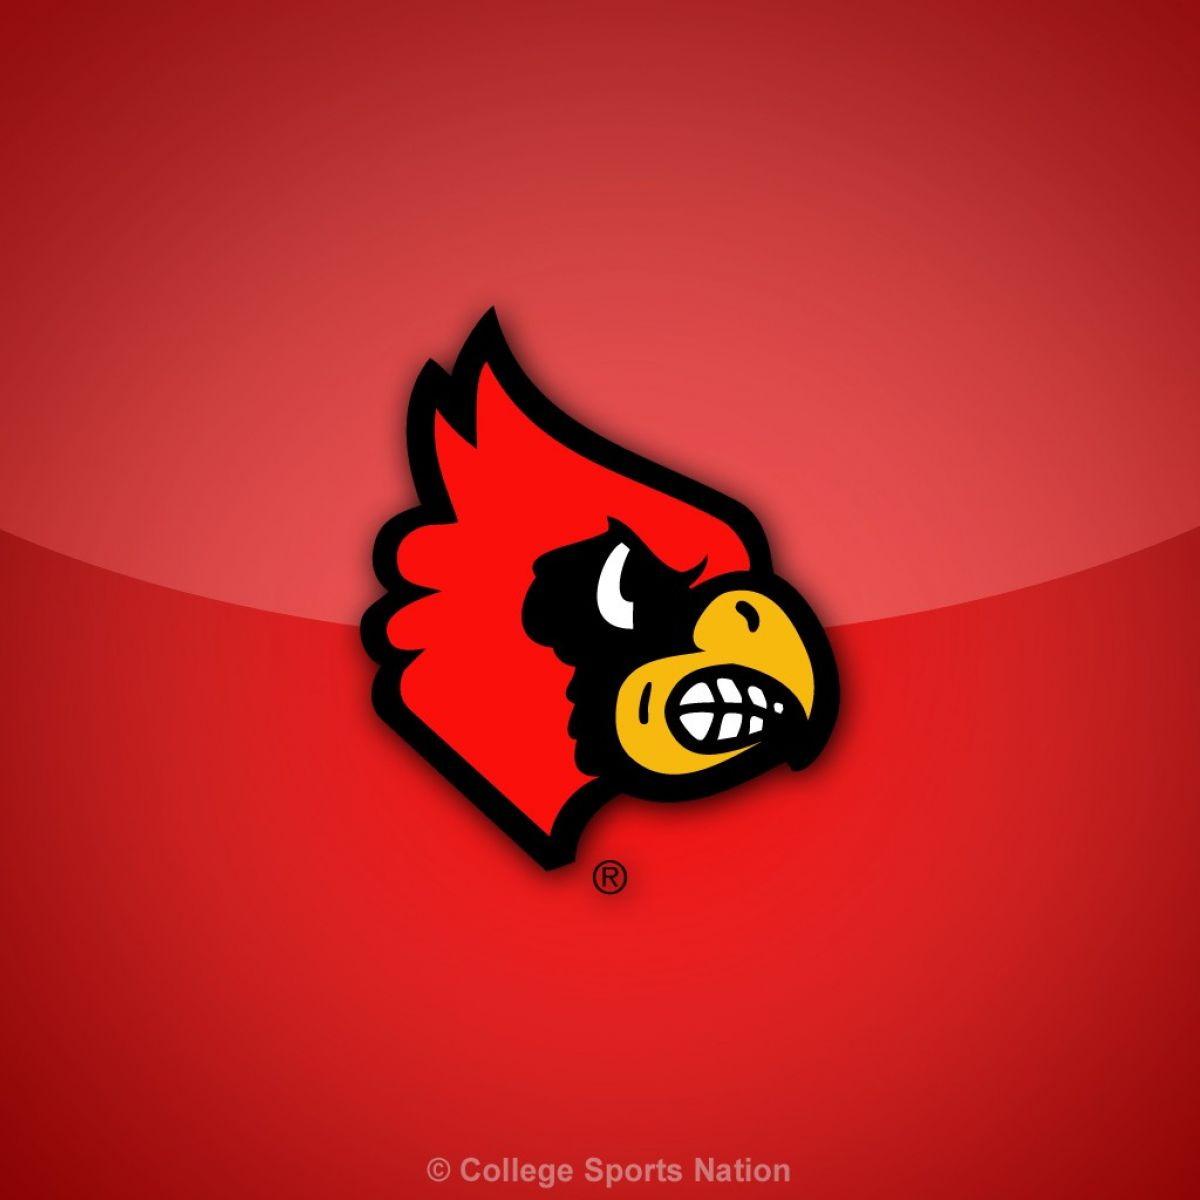 University Of Louisville Cardinals Ipad Wallpaper Fans